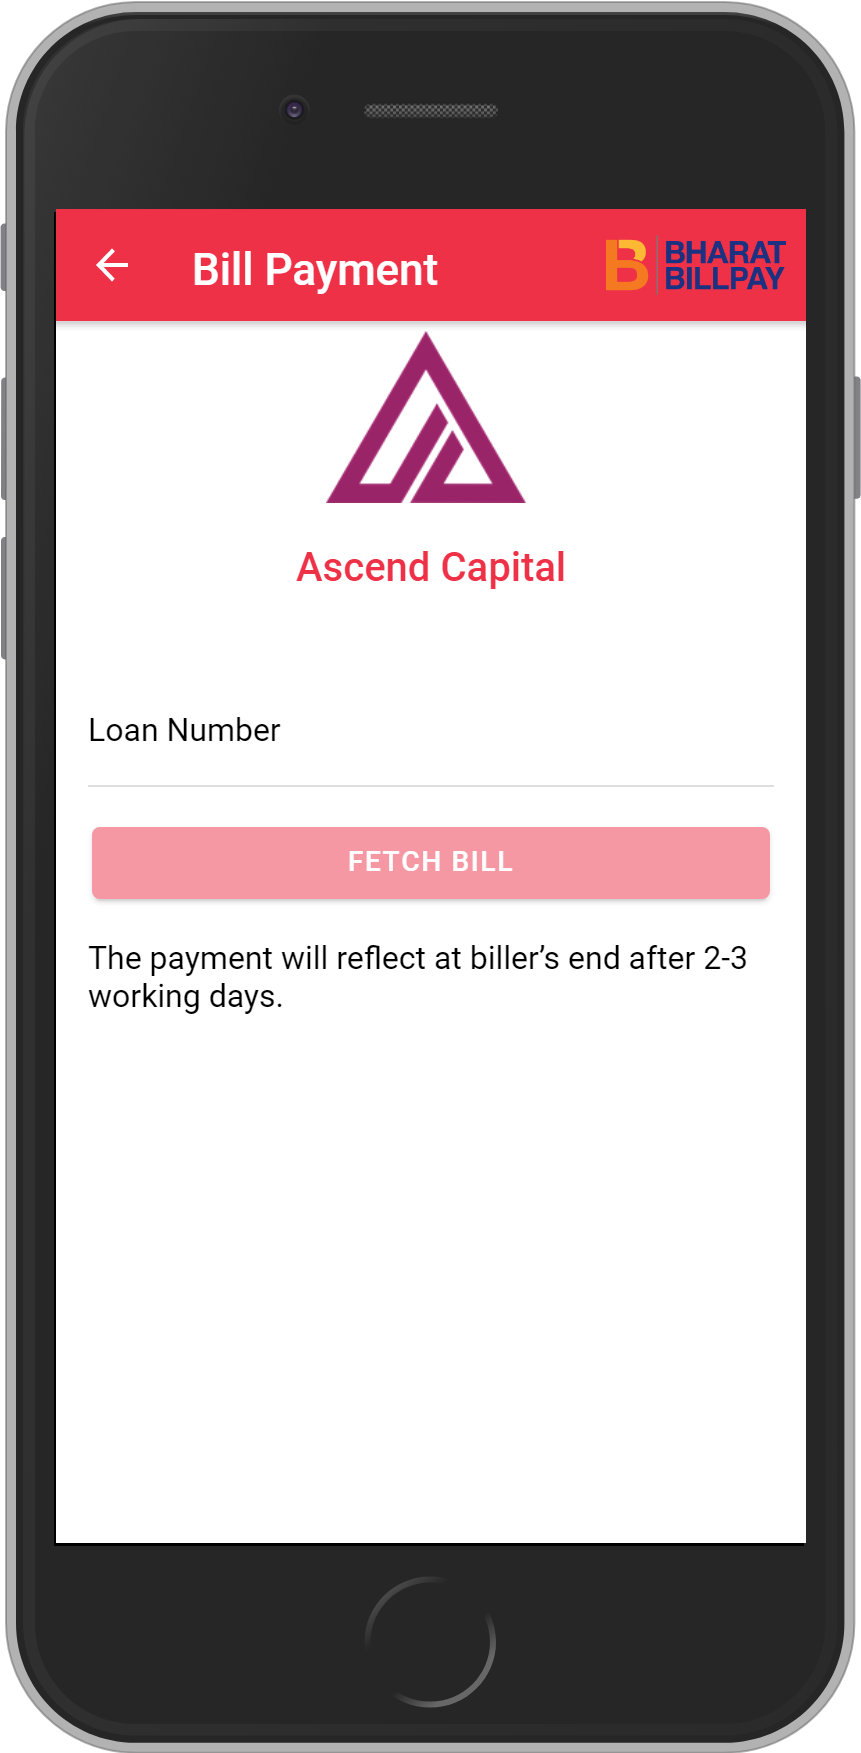 Get UNLIMITED <b>0.1%</b> CASHBACK on Ascend Capital Loan Payment.